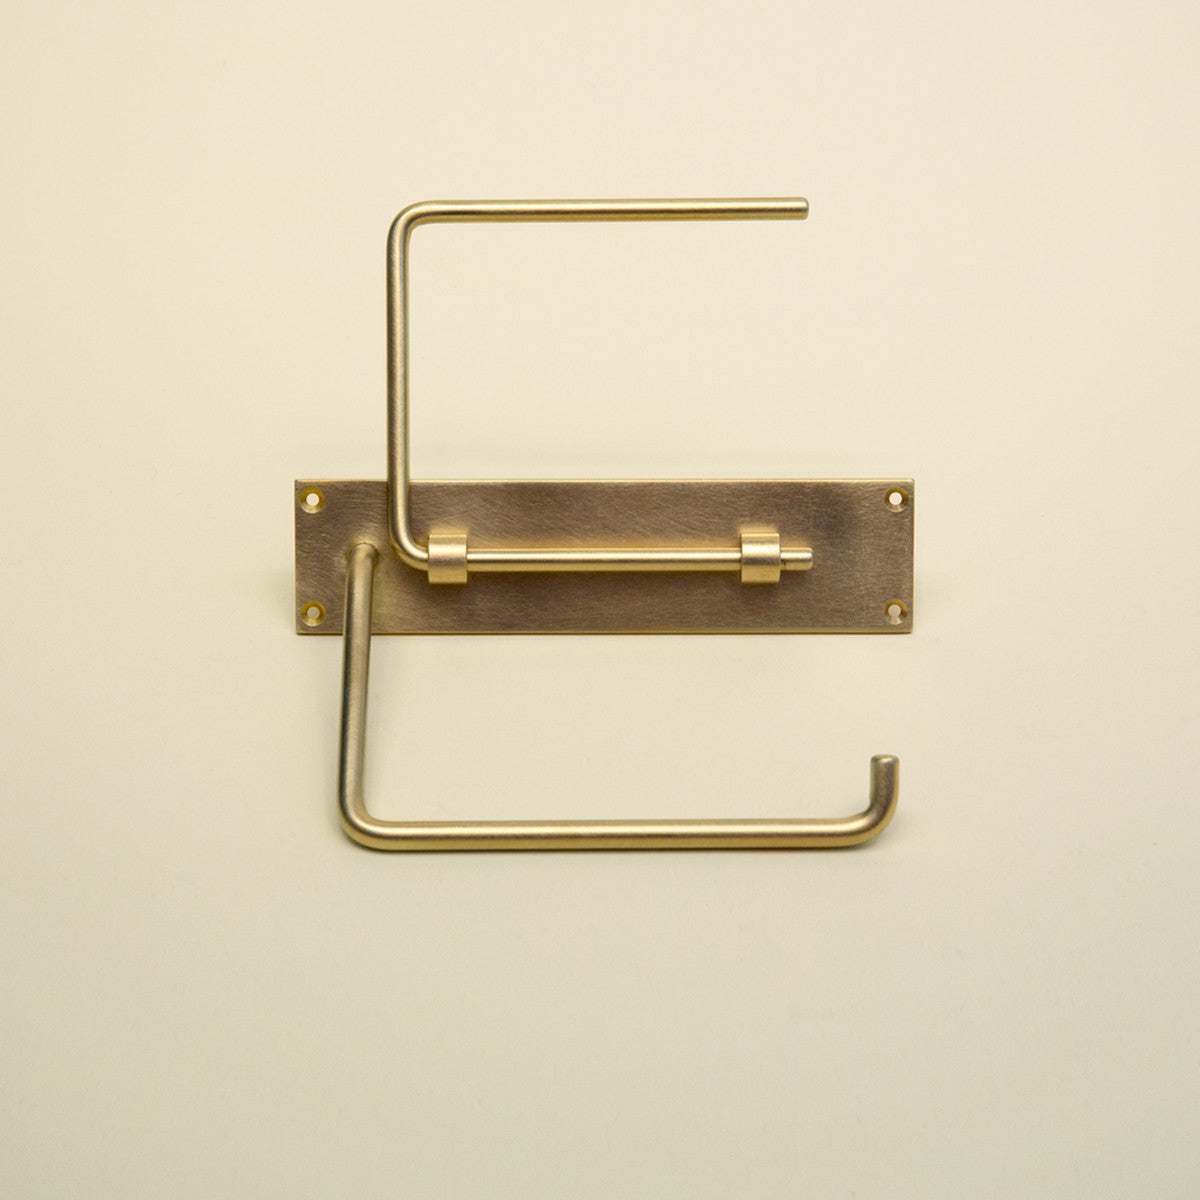 Brass Paper Holder